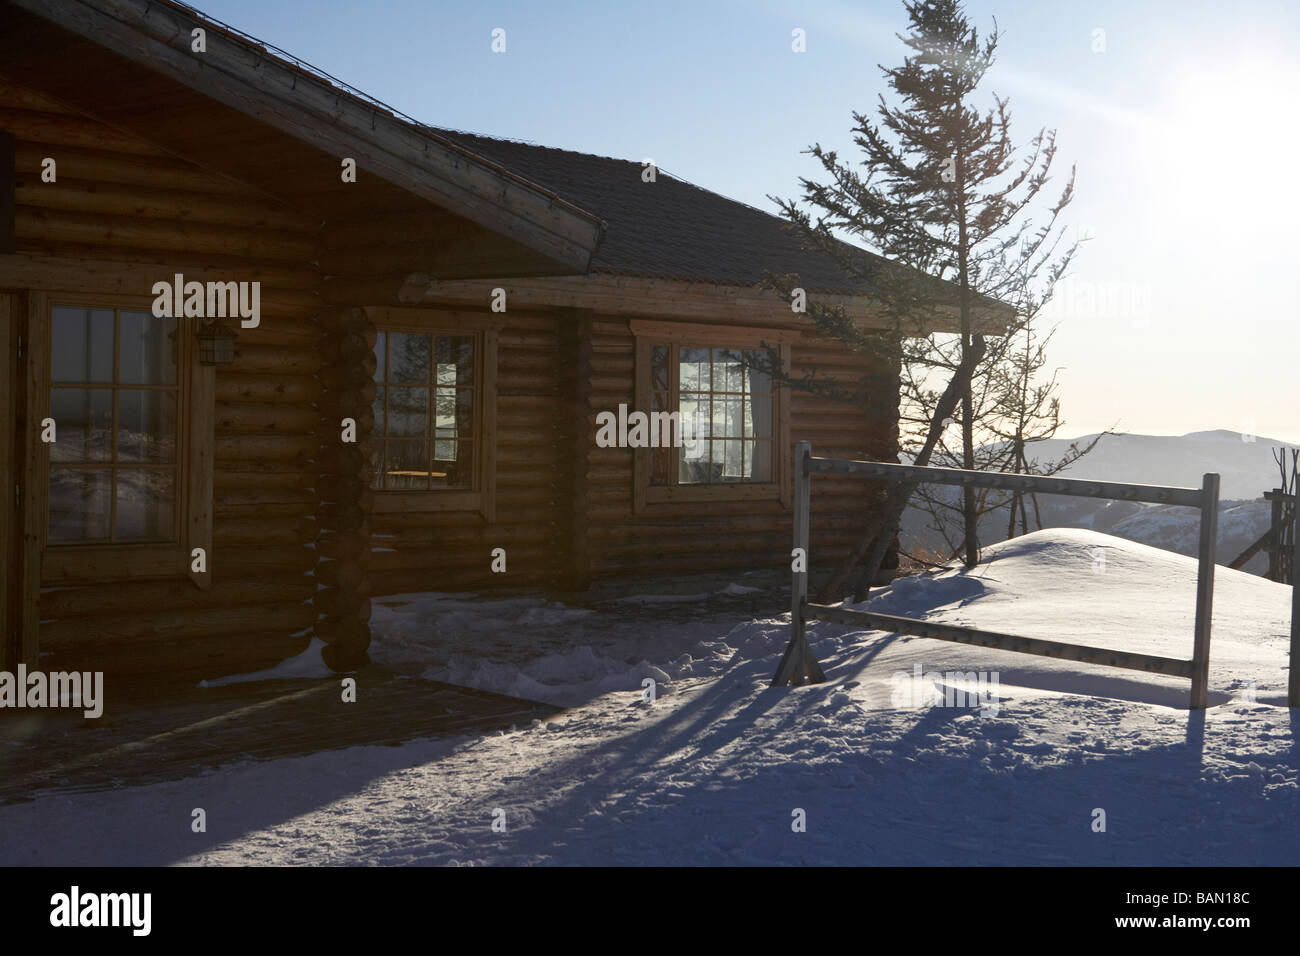 The exterior of a log cabin - Stock Image